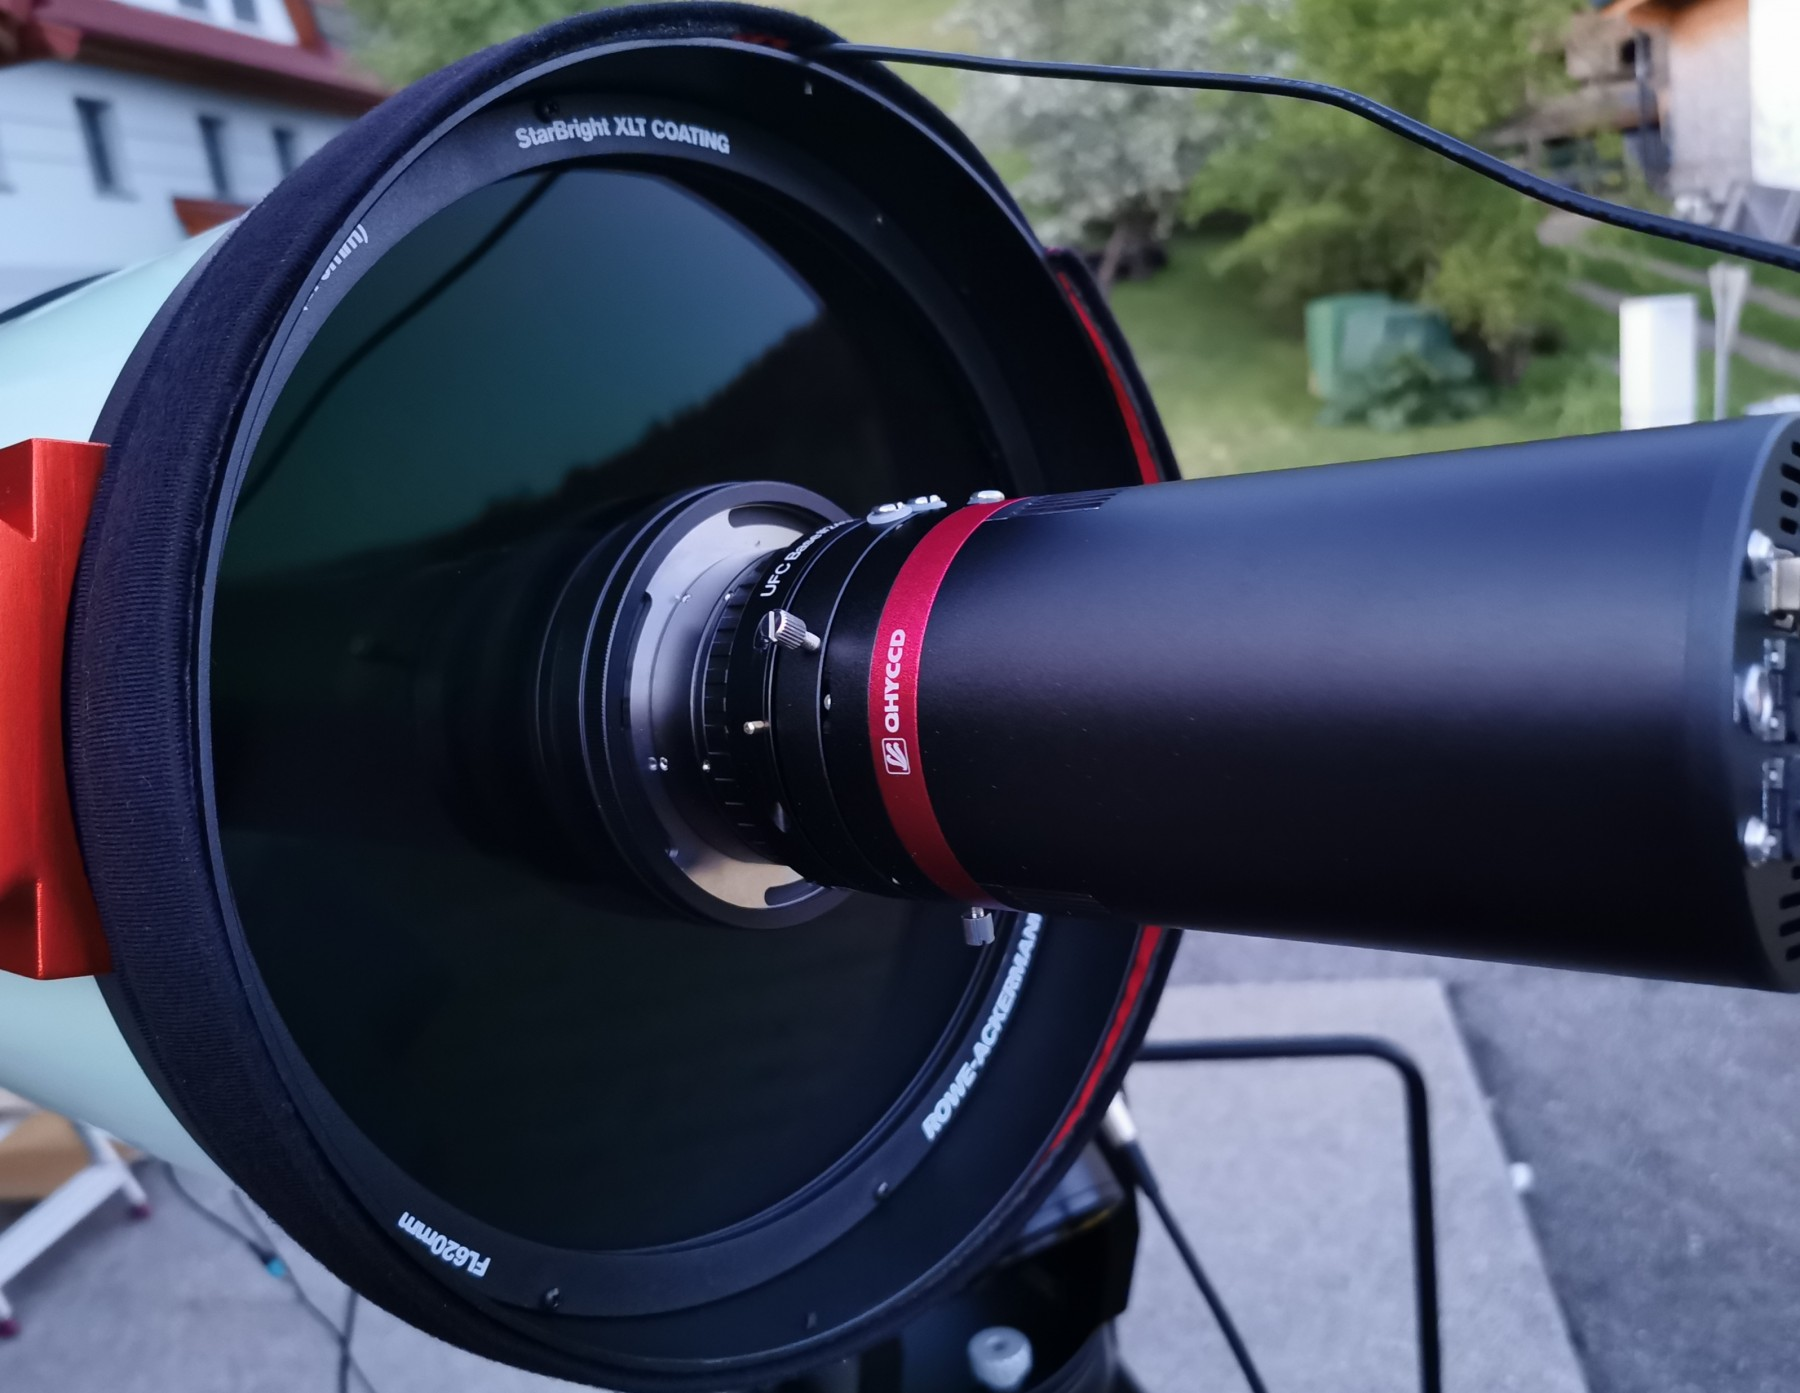 "Application image: RASA 11"" with QHY600M + Baader UFC D 50.4 Filter Slider + Baader UFC Basis"